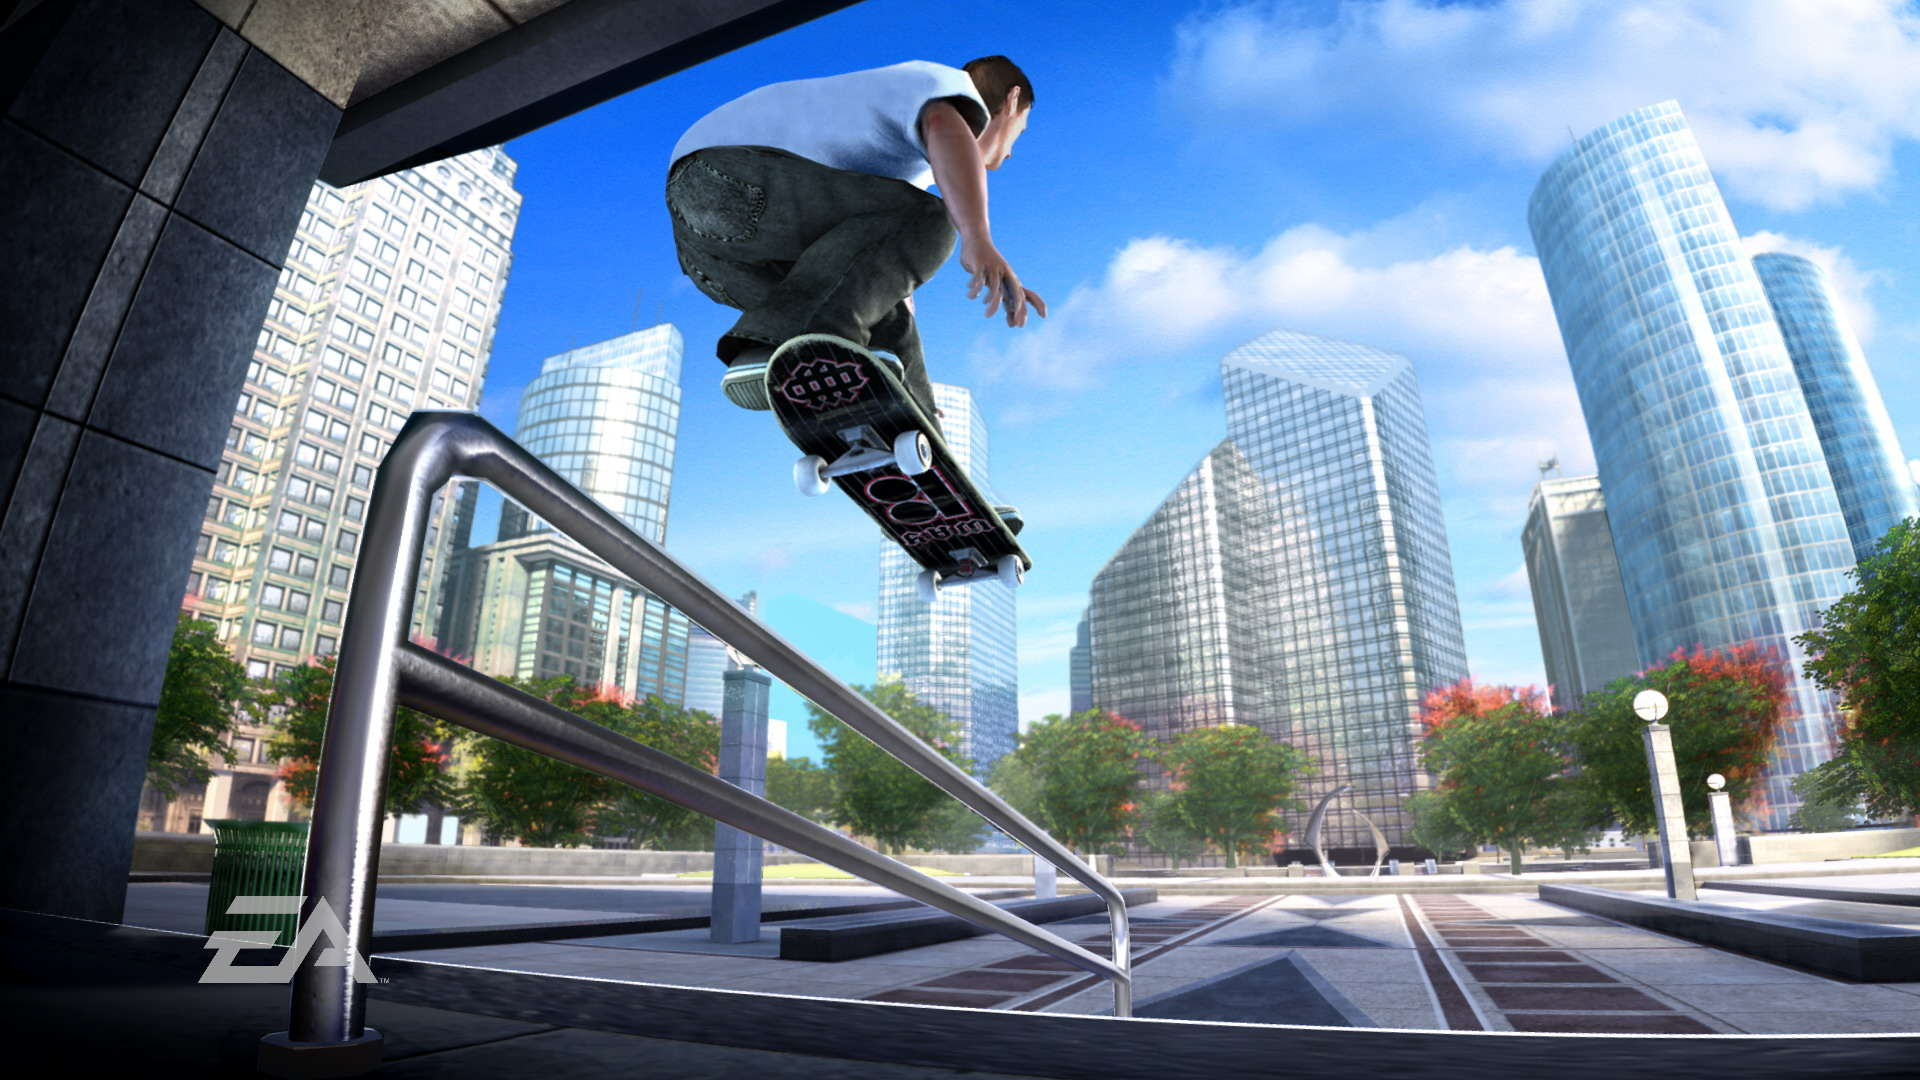 Skate 4 clip art download Skate 4 Release Date And Gameplay: What We Know So Far clip art download